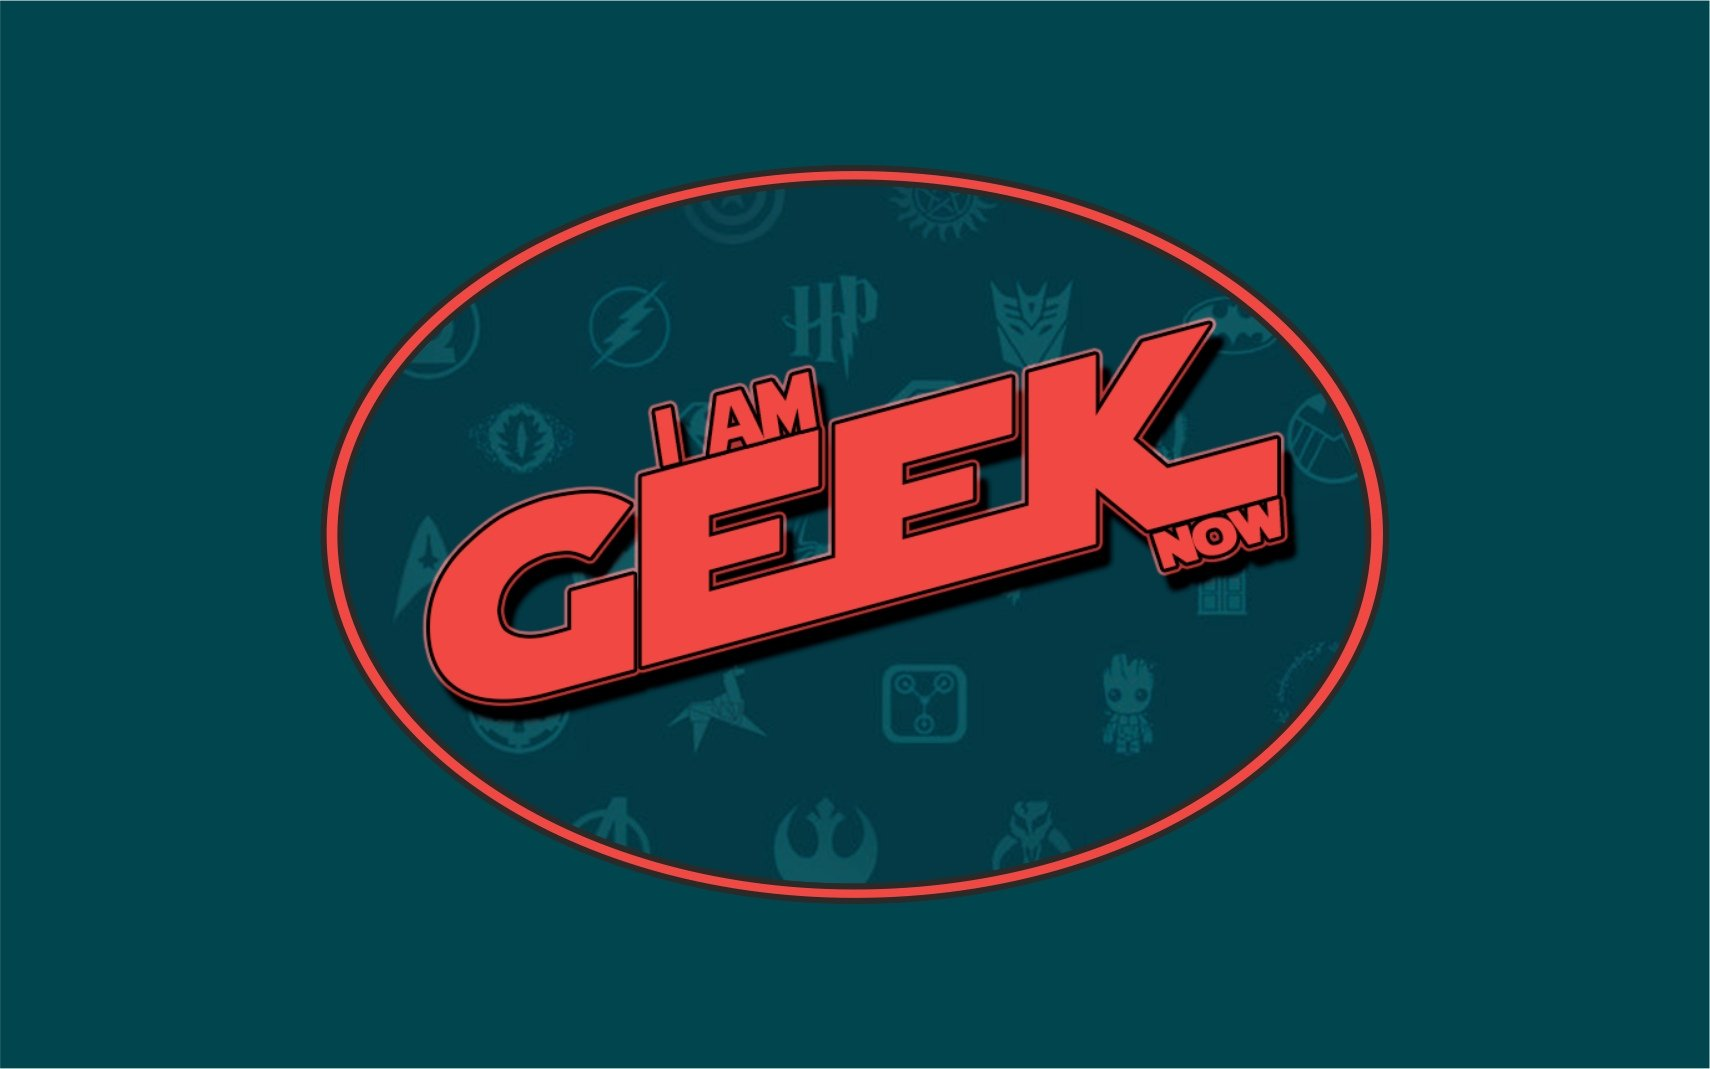 I_Am_GEEK_Now